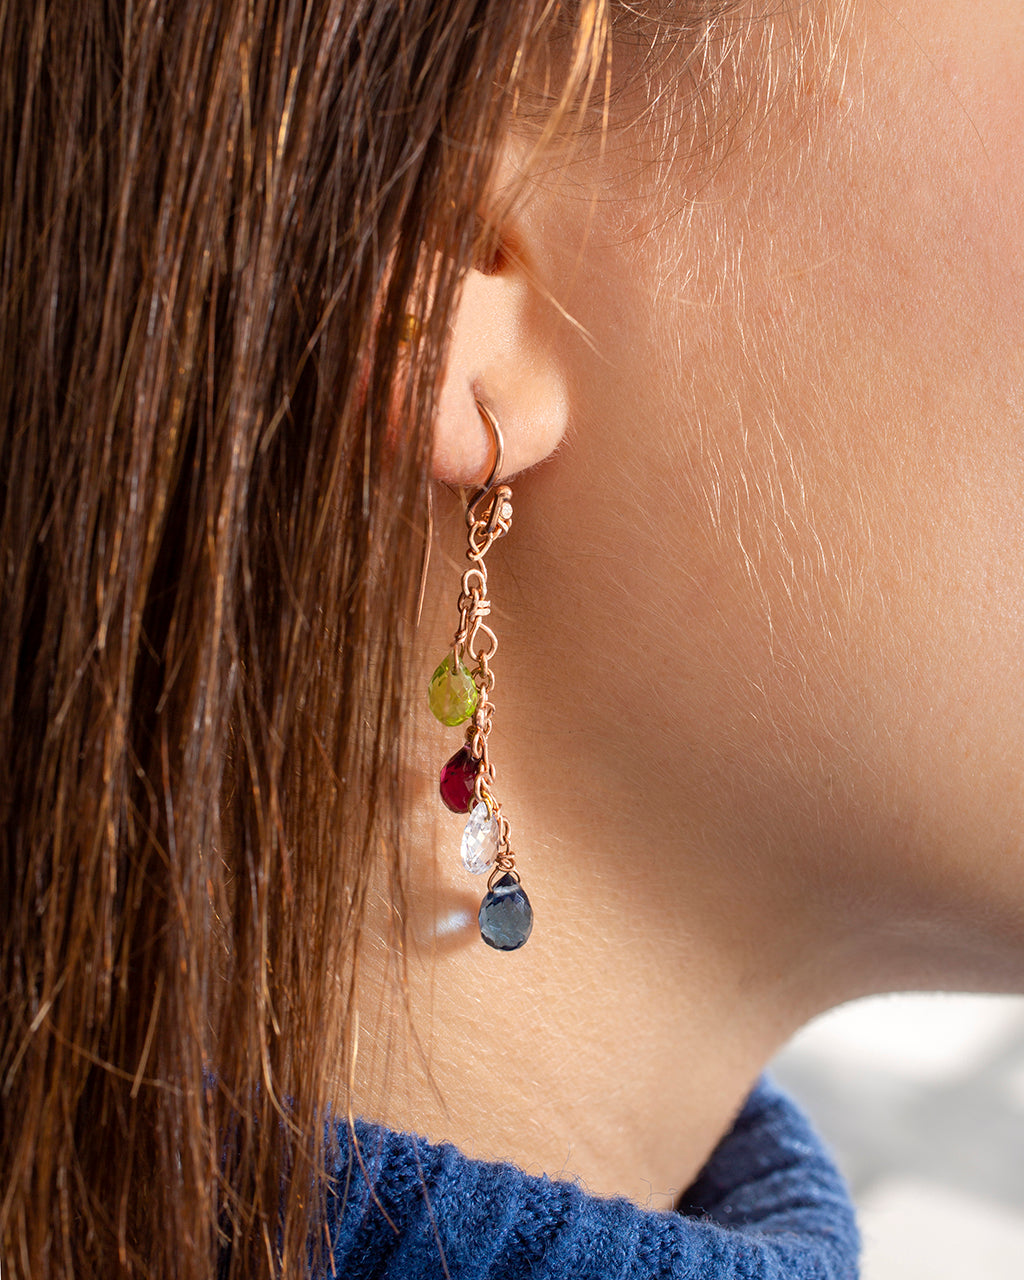 Dangling earrings with drops of precious stones – 003